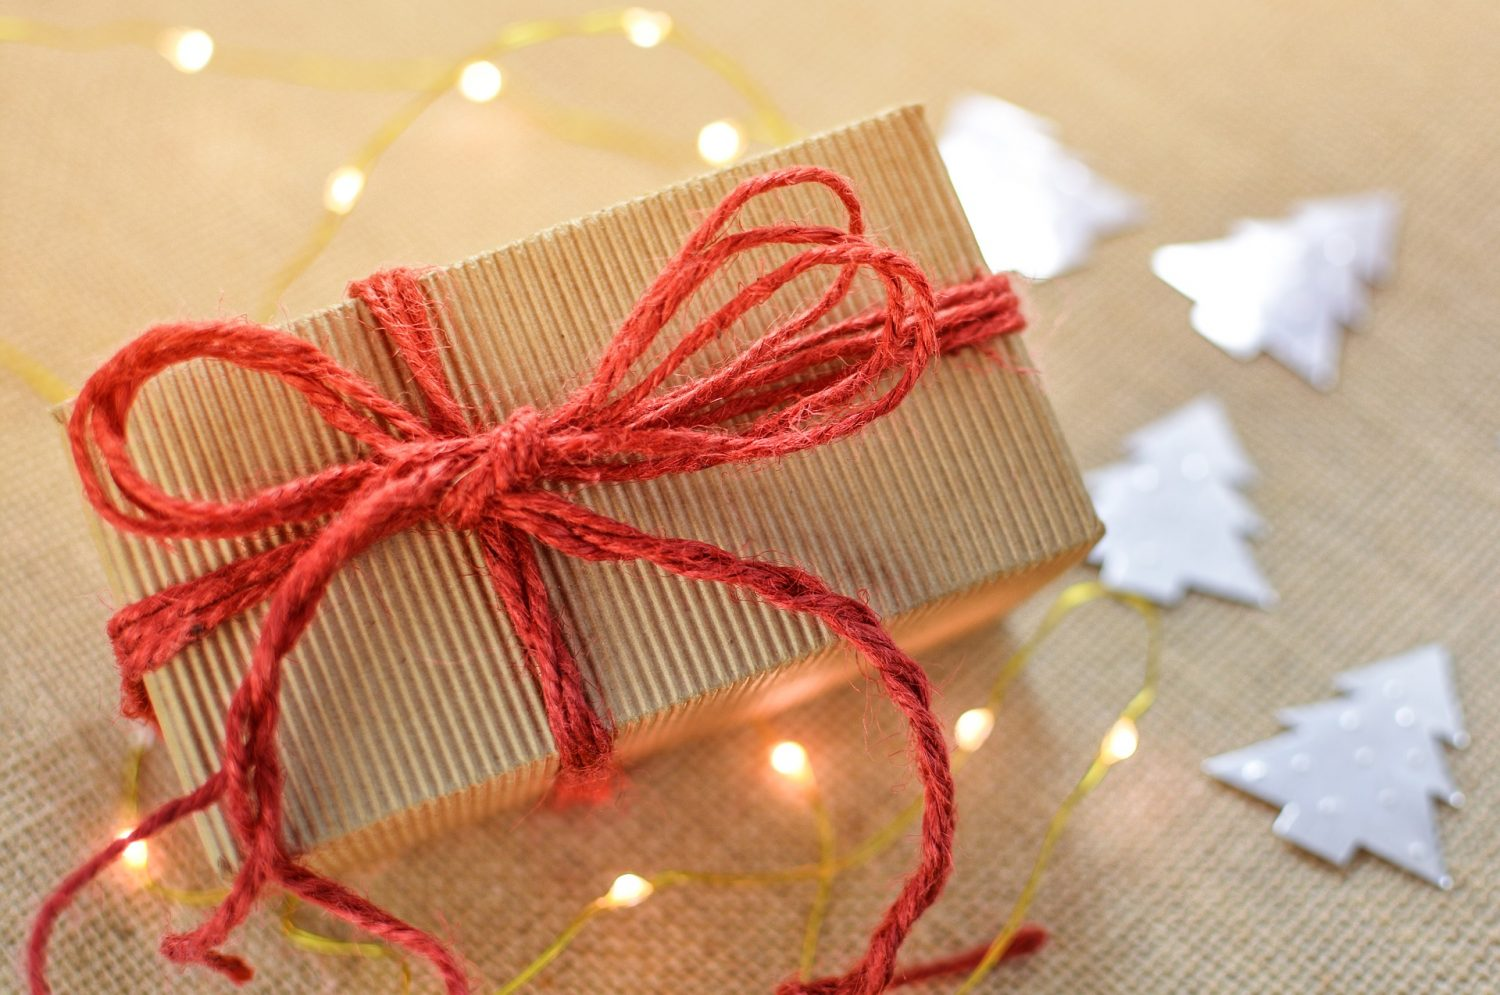 People Love Promotional Gifts - Here's Why